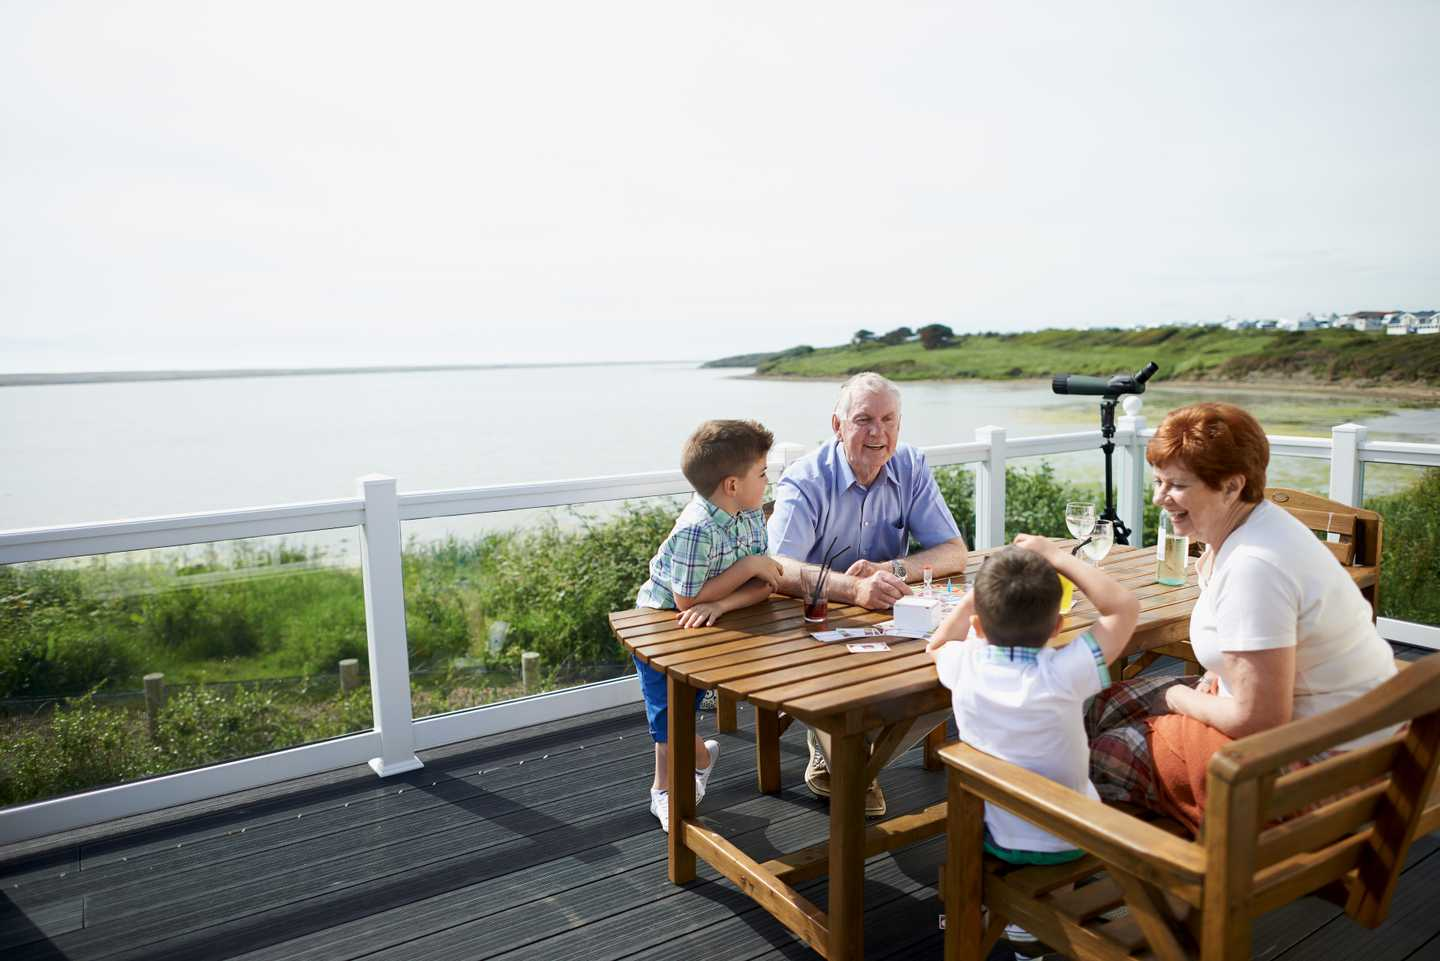 Family enjoying the sea view and playing a game, at the table on the veranda of their caravan